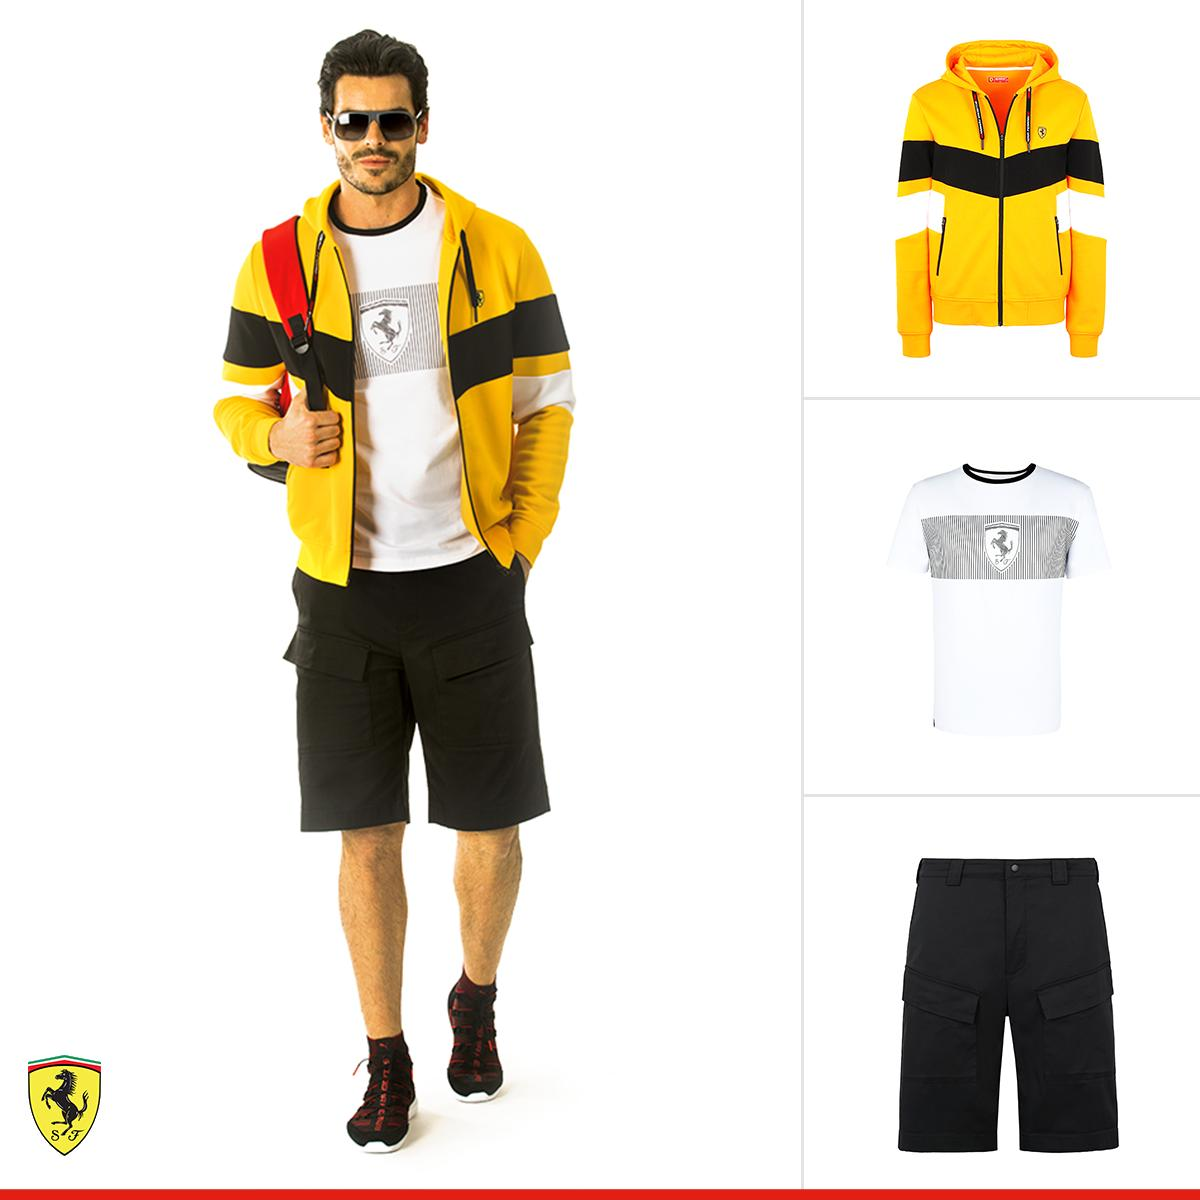 Bring uniqueness to your style thanks to the special colors and lines of this #PoweRed outfit: wear urban appeal. http://bit.ly/SFC-Look  #ScuderiaFerrariCollection